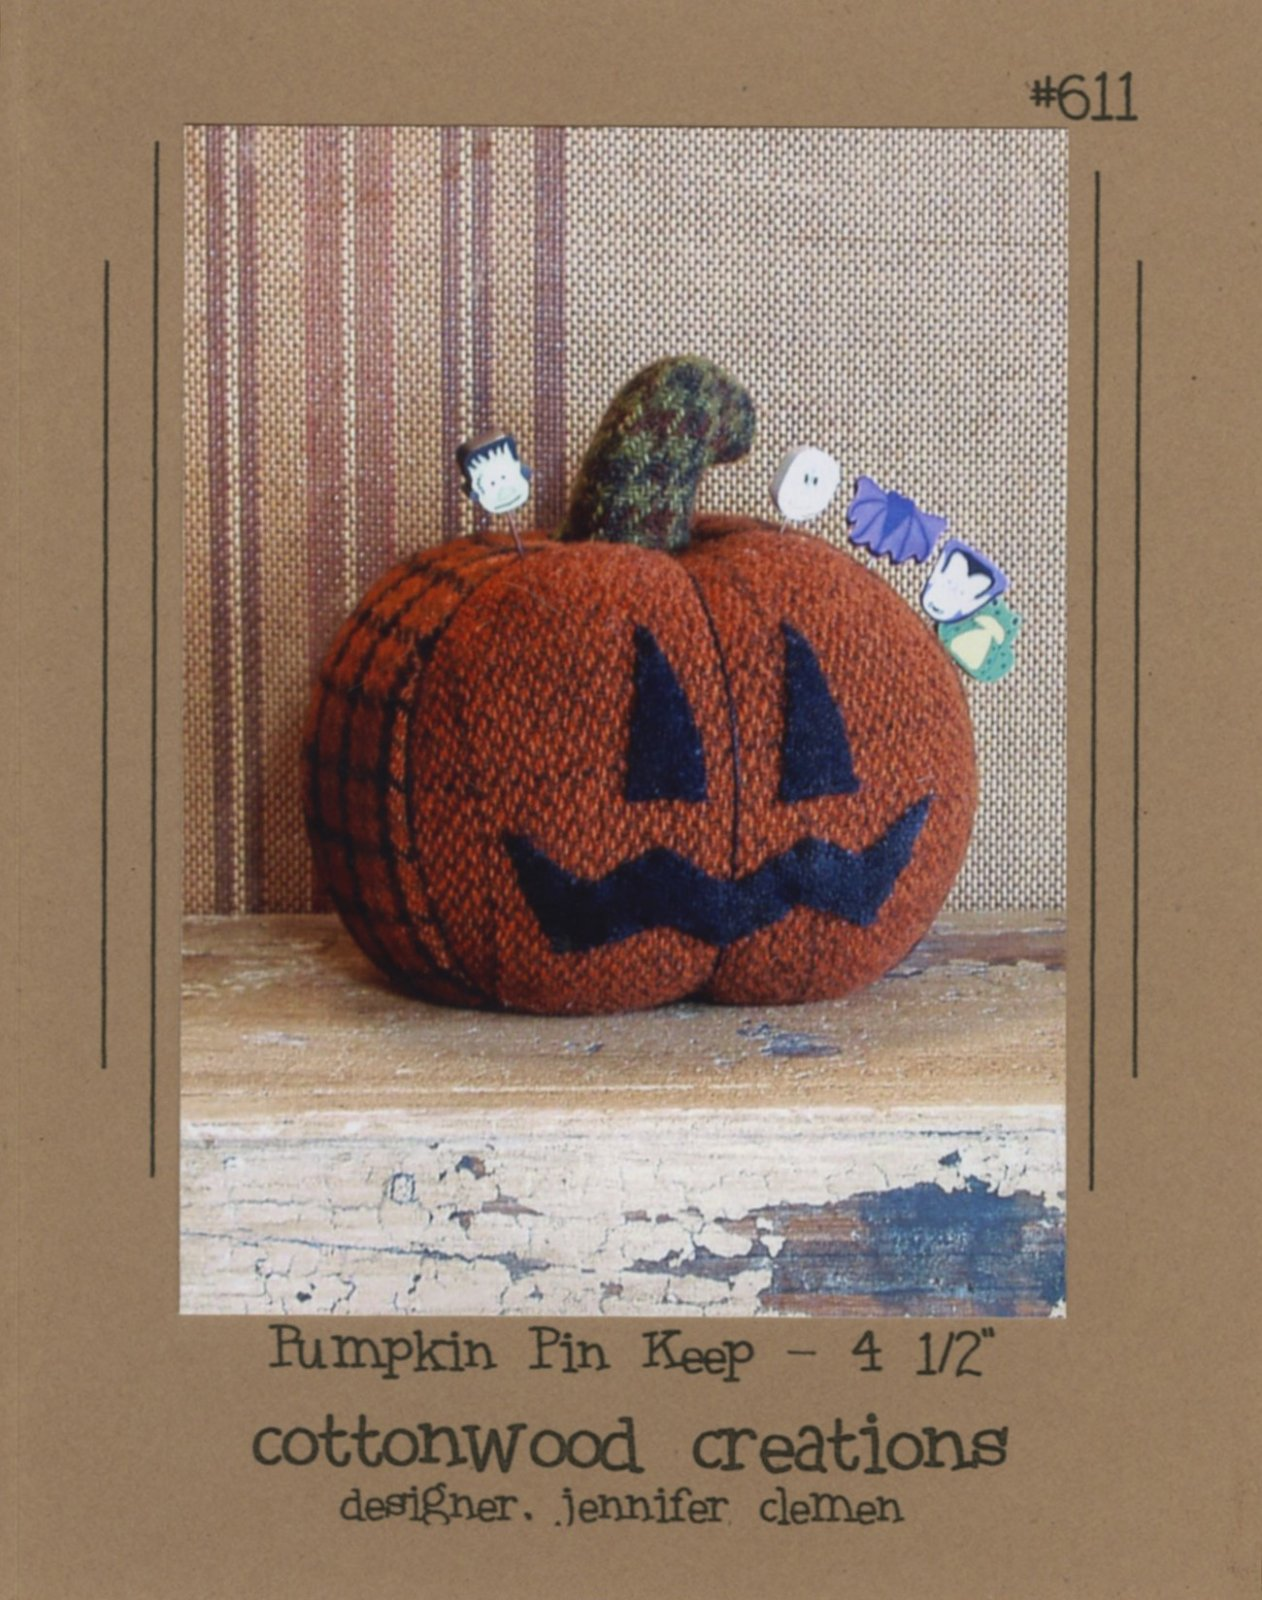 Pumpkin Pin Keep